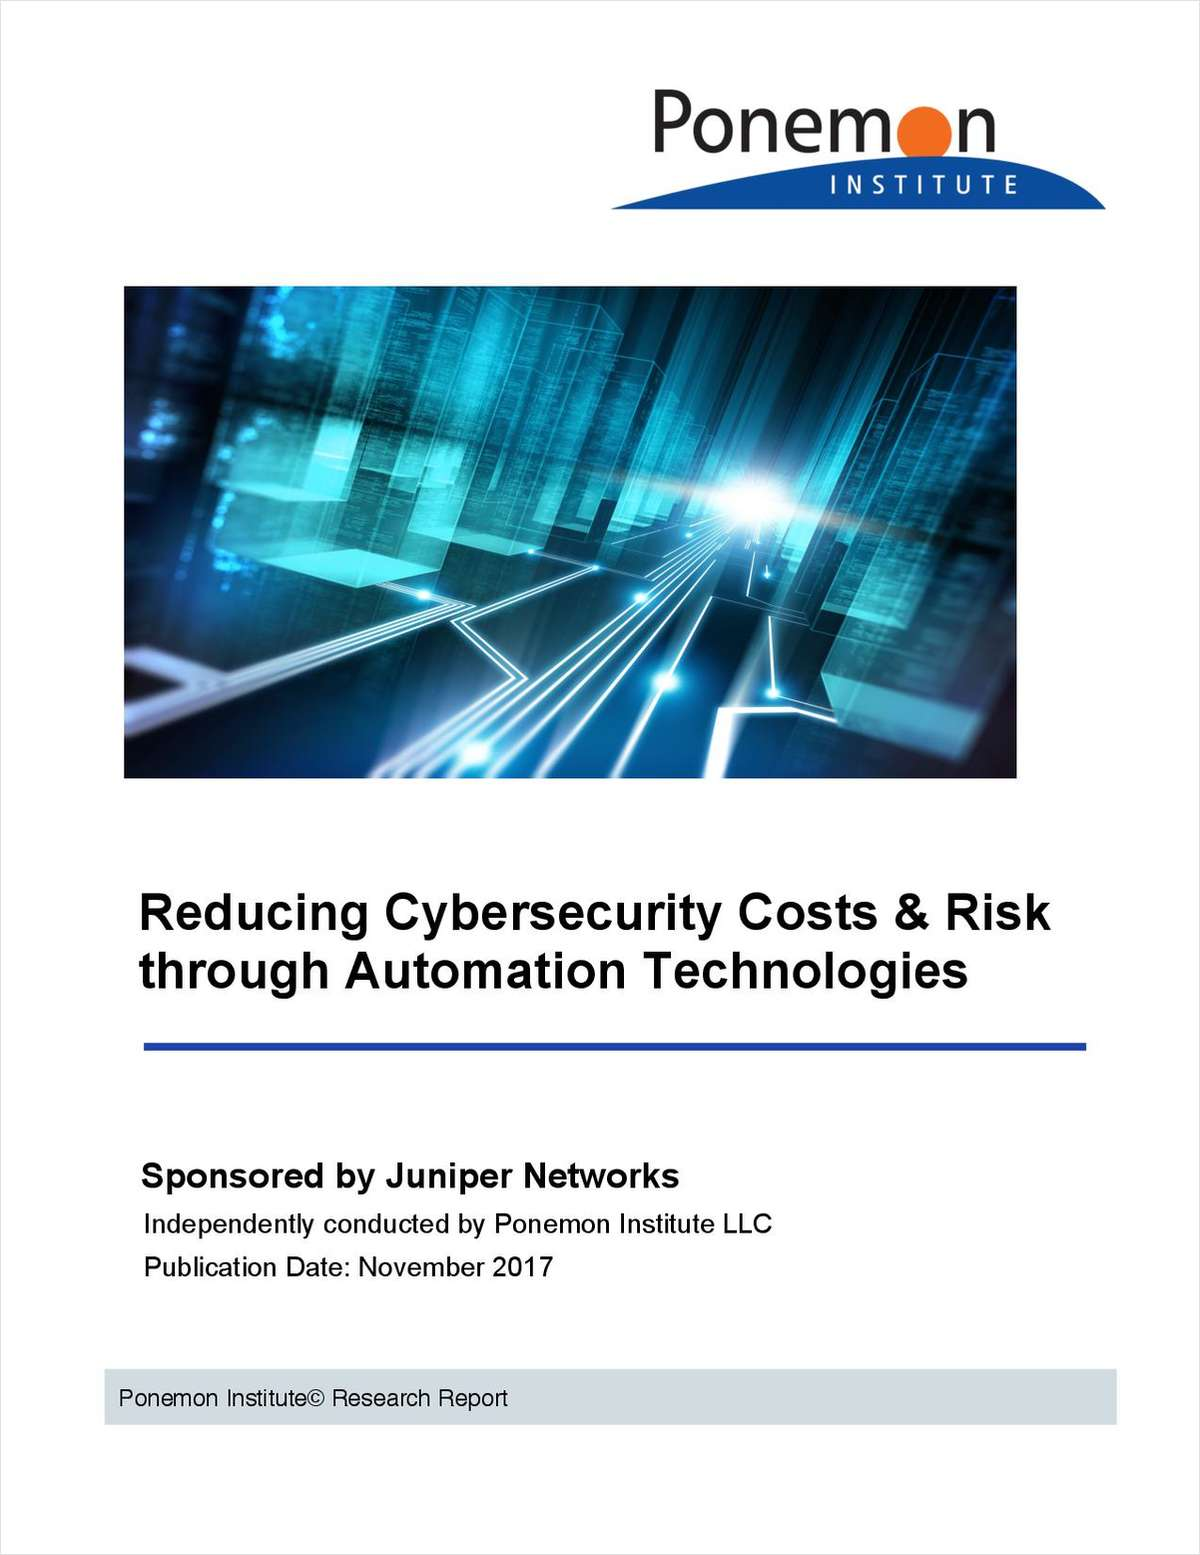 Ponemon: Reducing Cybersecurity Costs & Risk through Automation Technologies